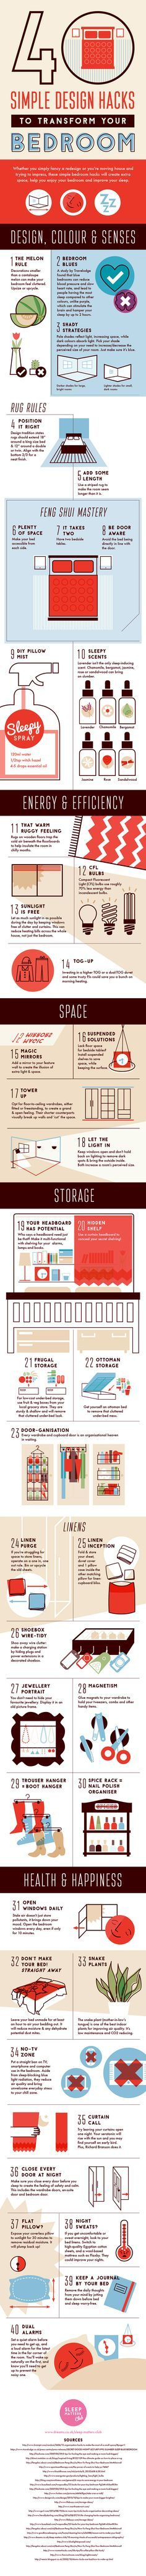 Spruce up your snooze haven with these 40 bedroom design hacks. From the melon rule to using under the bed storage, taking advantage of sunlight and achieving Feng Shui mastery. This infographic courtesy of The Sleep Matters Club will propel your bedroom from messy cave to a well designed, stylish and attractive space in which you can successfully unwind from the day and properly rise for a new one.